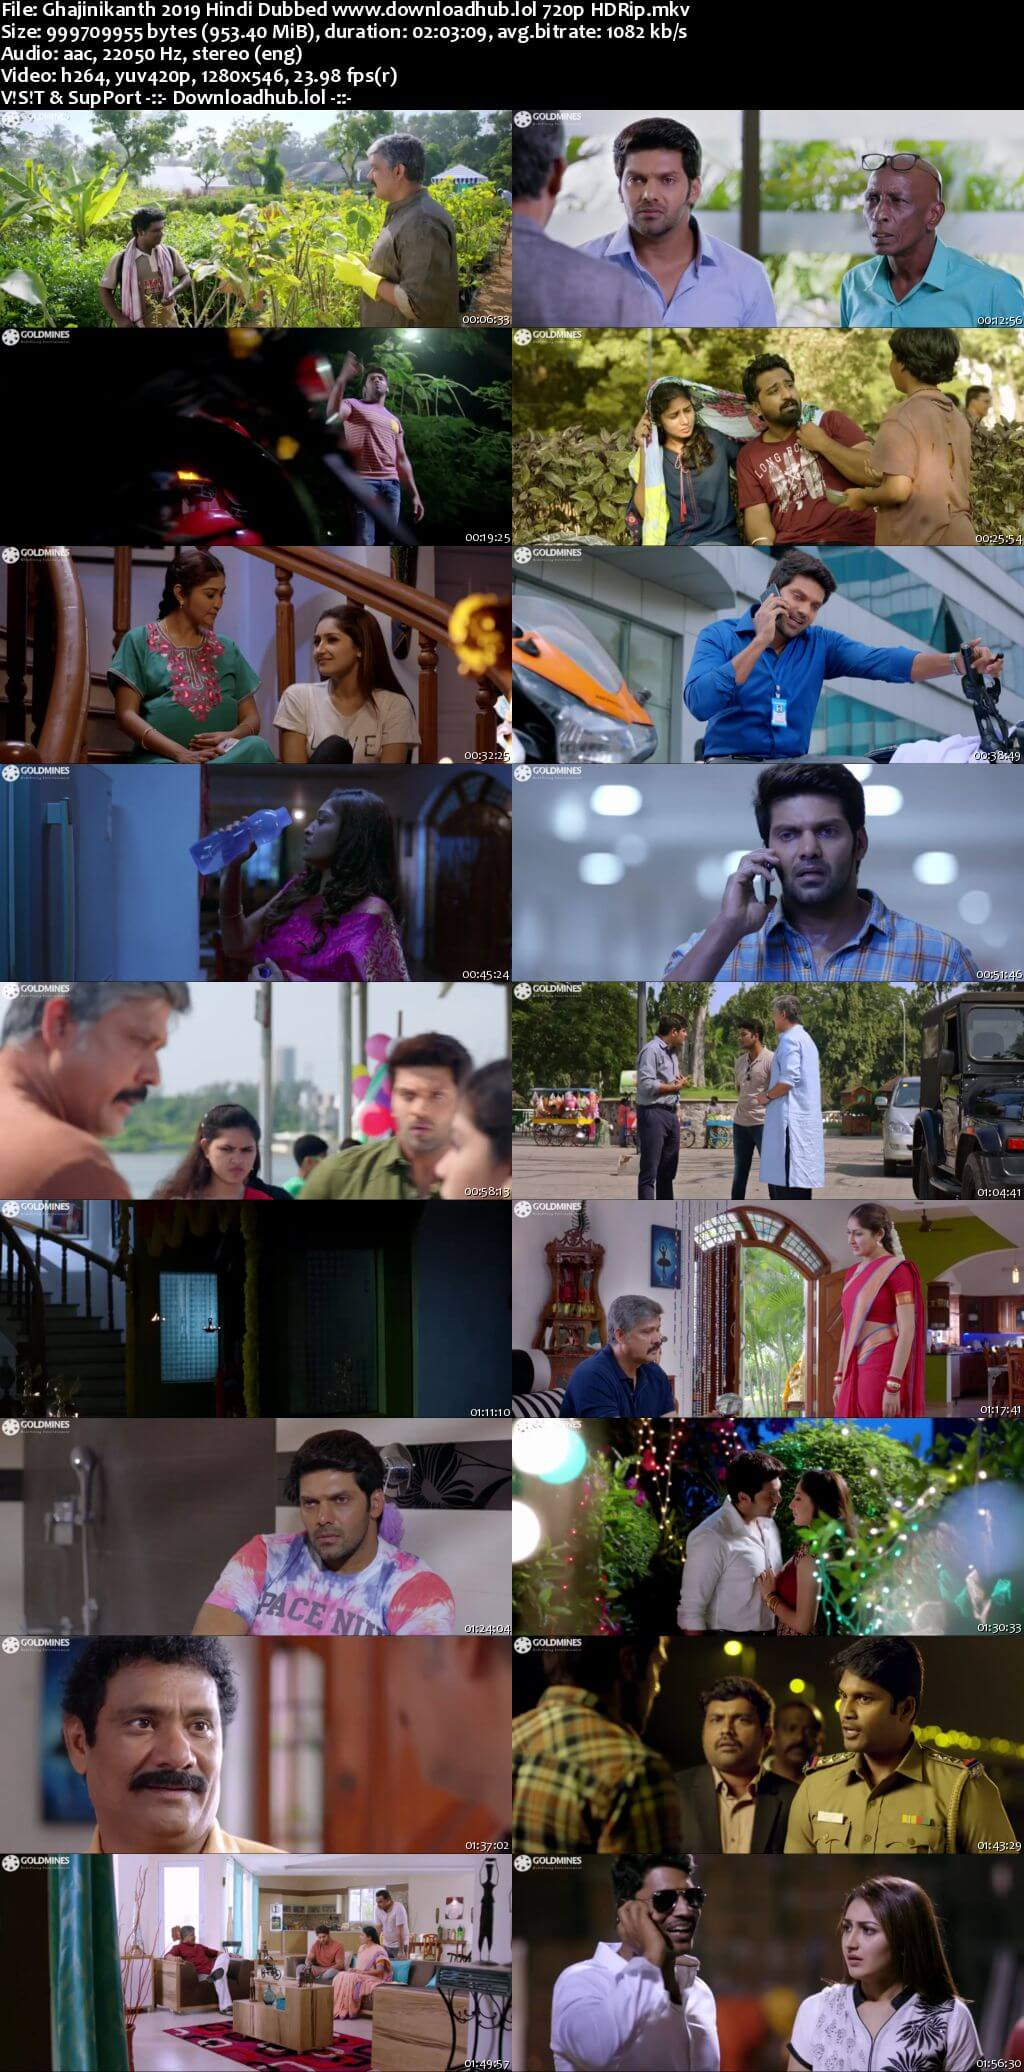 Ghajinikanth 2019 Hindi Dubbed 720p HDRip x264